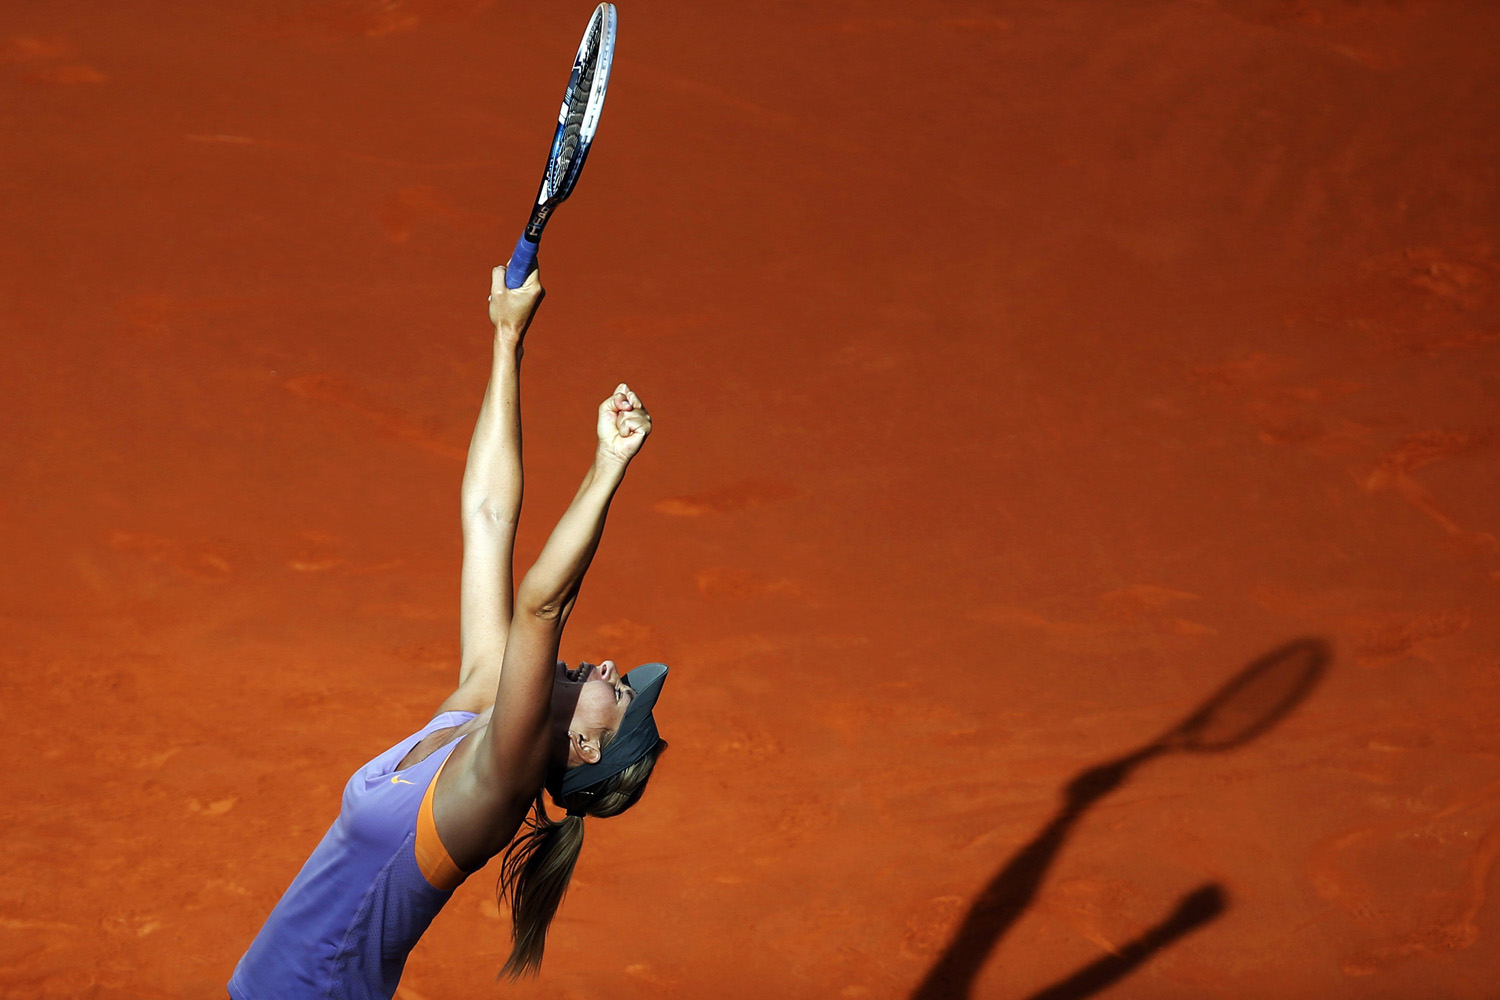 Maria Sharapova of Russia celebrates her victory over Simona Halep of Romania at the end of their women's singles final match at the Madrid Open tennis tournament on May 11, 2014.